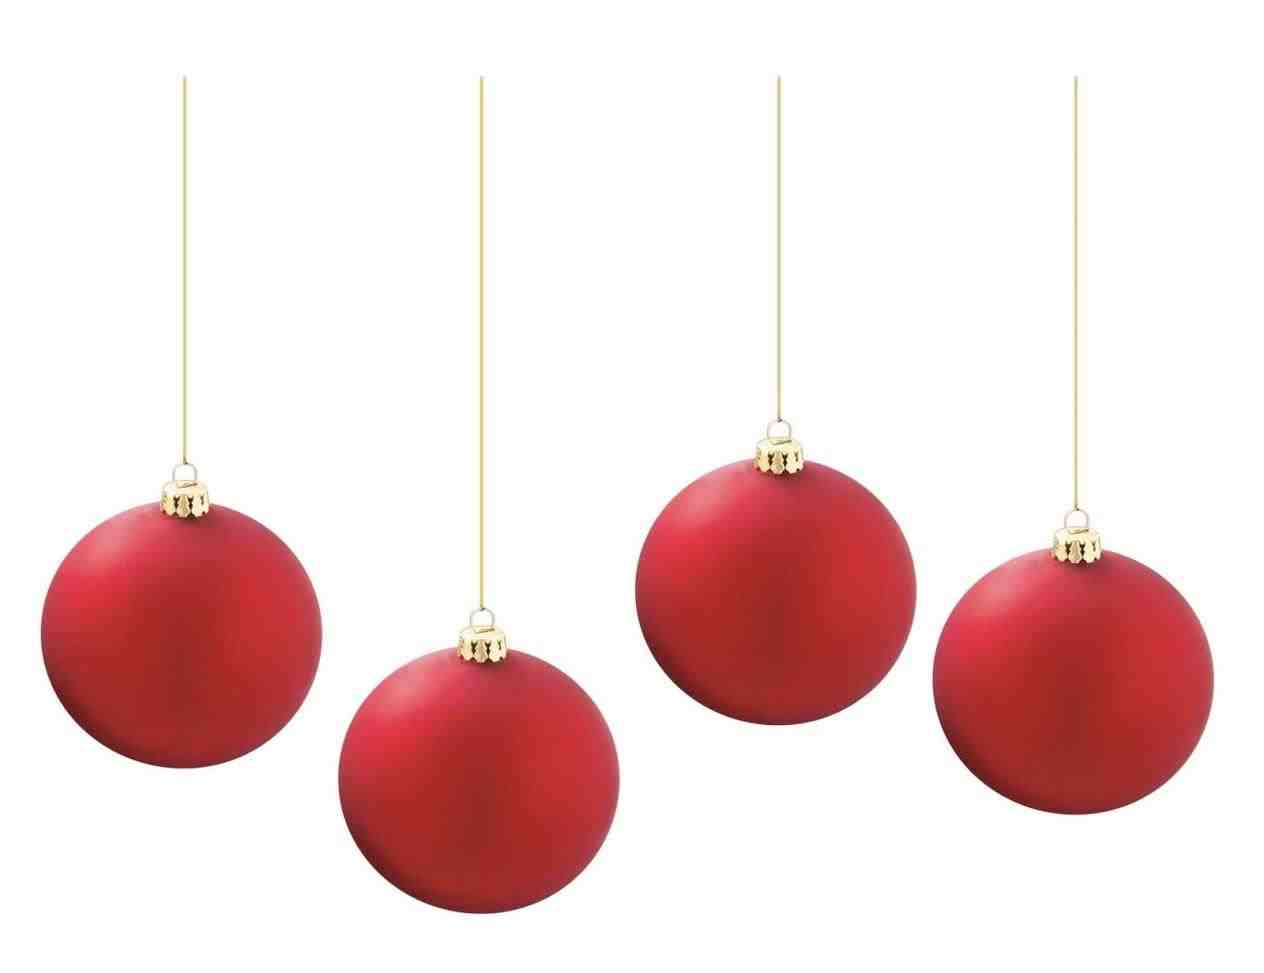 1264x973 Red Christmas Ornaments Clipart Cheminee.website